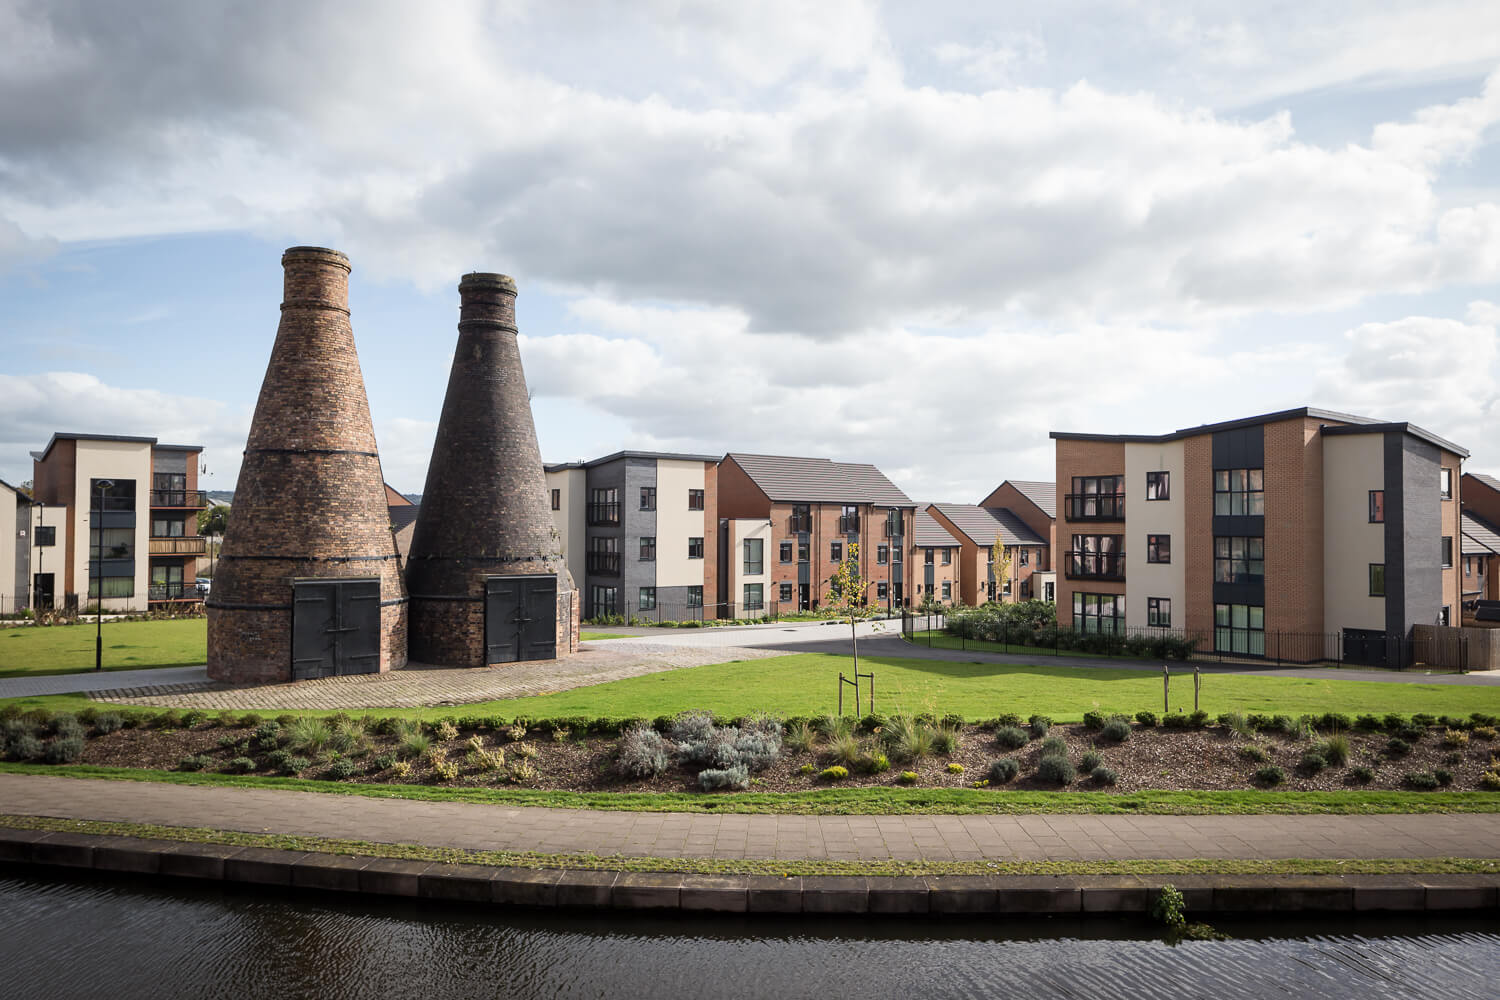 Architectural photography Staffordshire Bottle Kilns